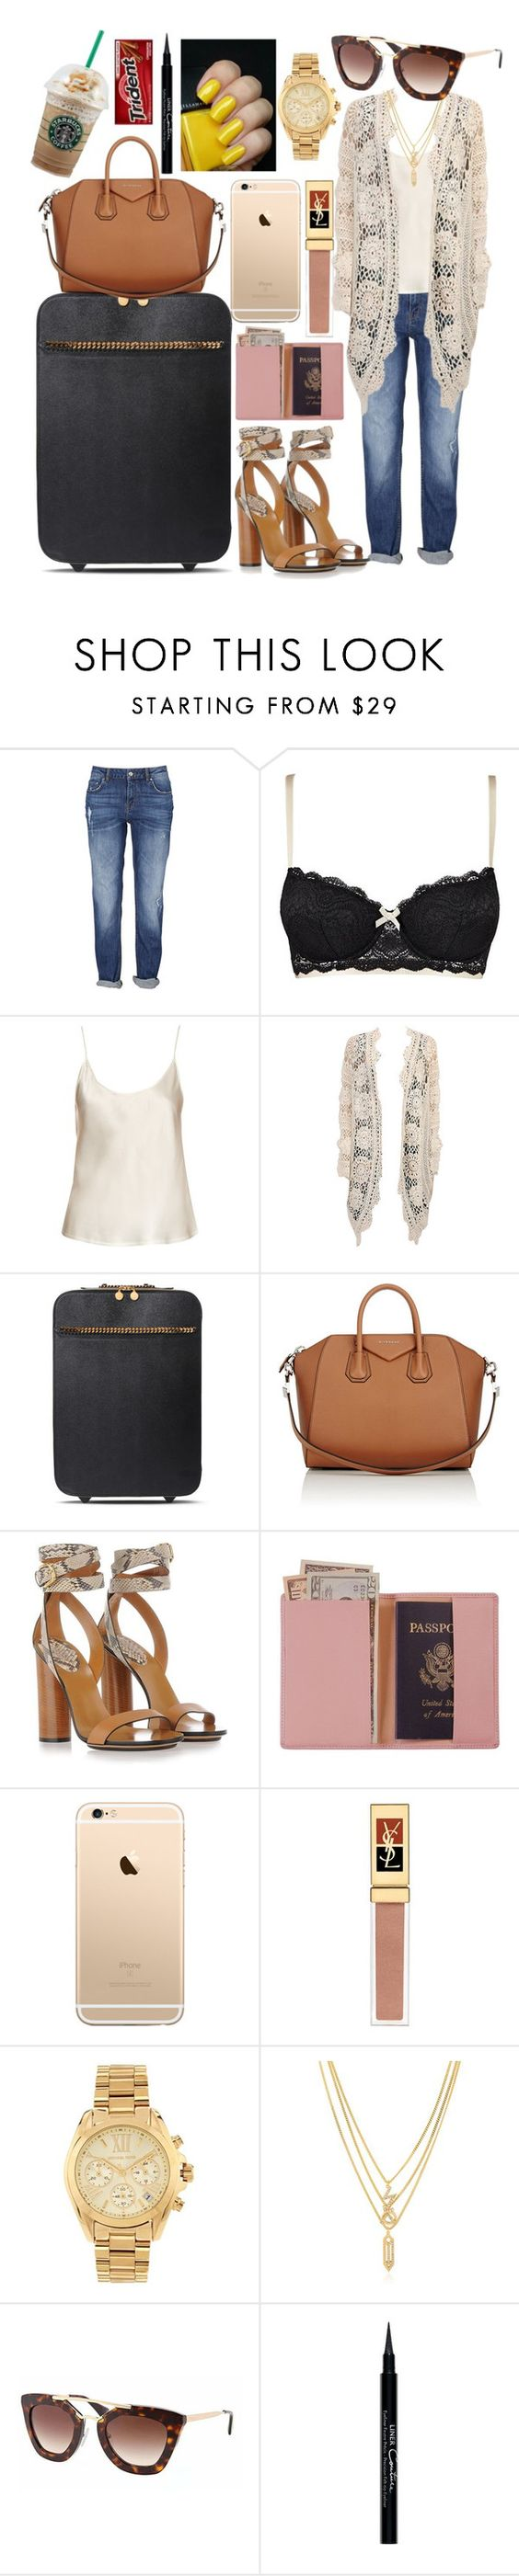 """""""Airport Style."""" by obuoliukas69 ❤ liked on Polyvore featuring Heidi Klum Intimates, La Perla, Mes Demoiselles..., STELLA McCARTNEY, Givenchy, Gucci, Royce Leather, Yves Saint Laurent, Michael Kors and Kenzo"""